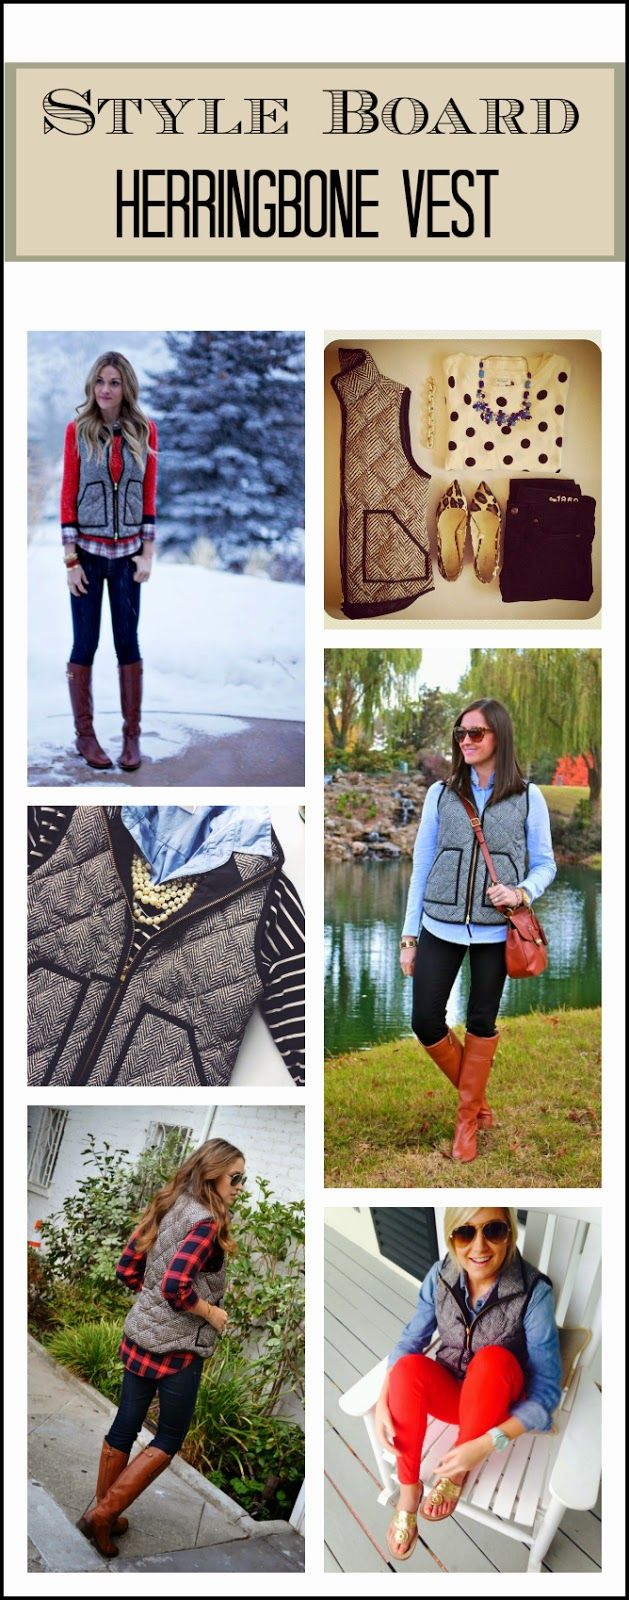 I bought this herringbone vest recently... Love these looks to go with it!